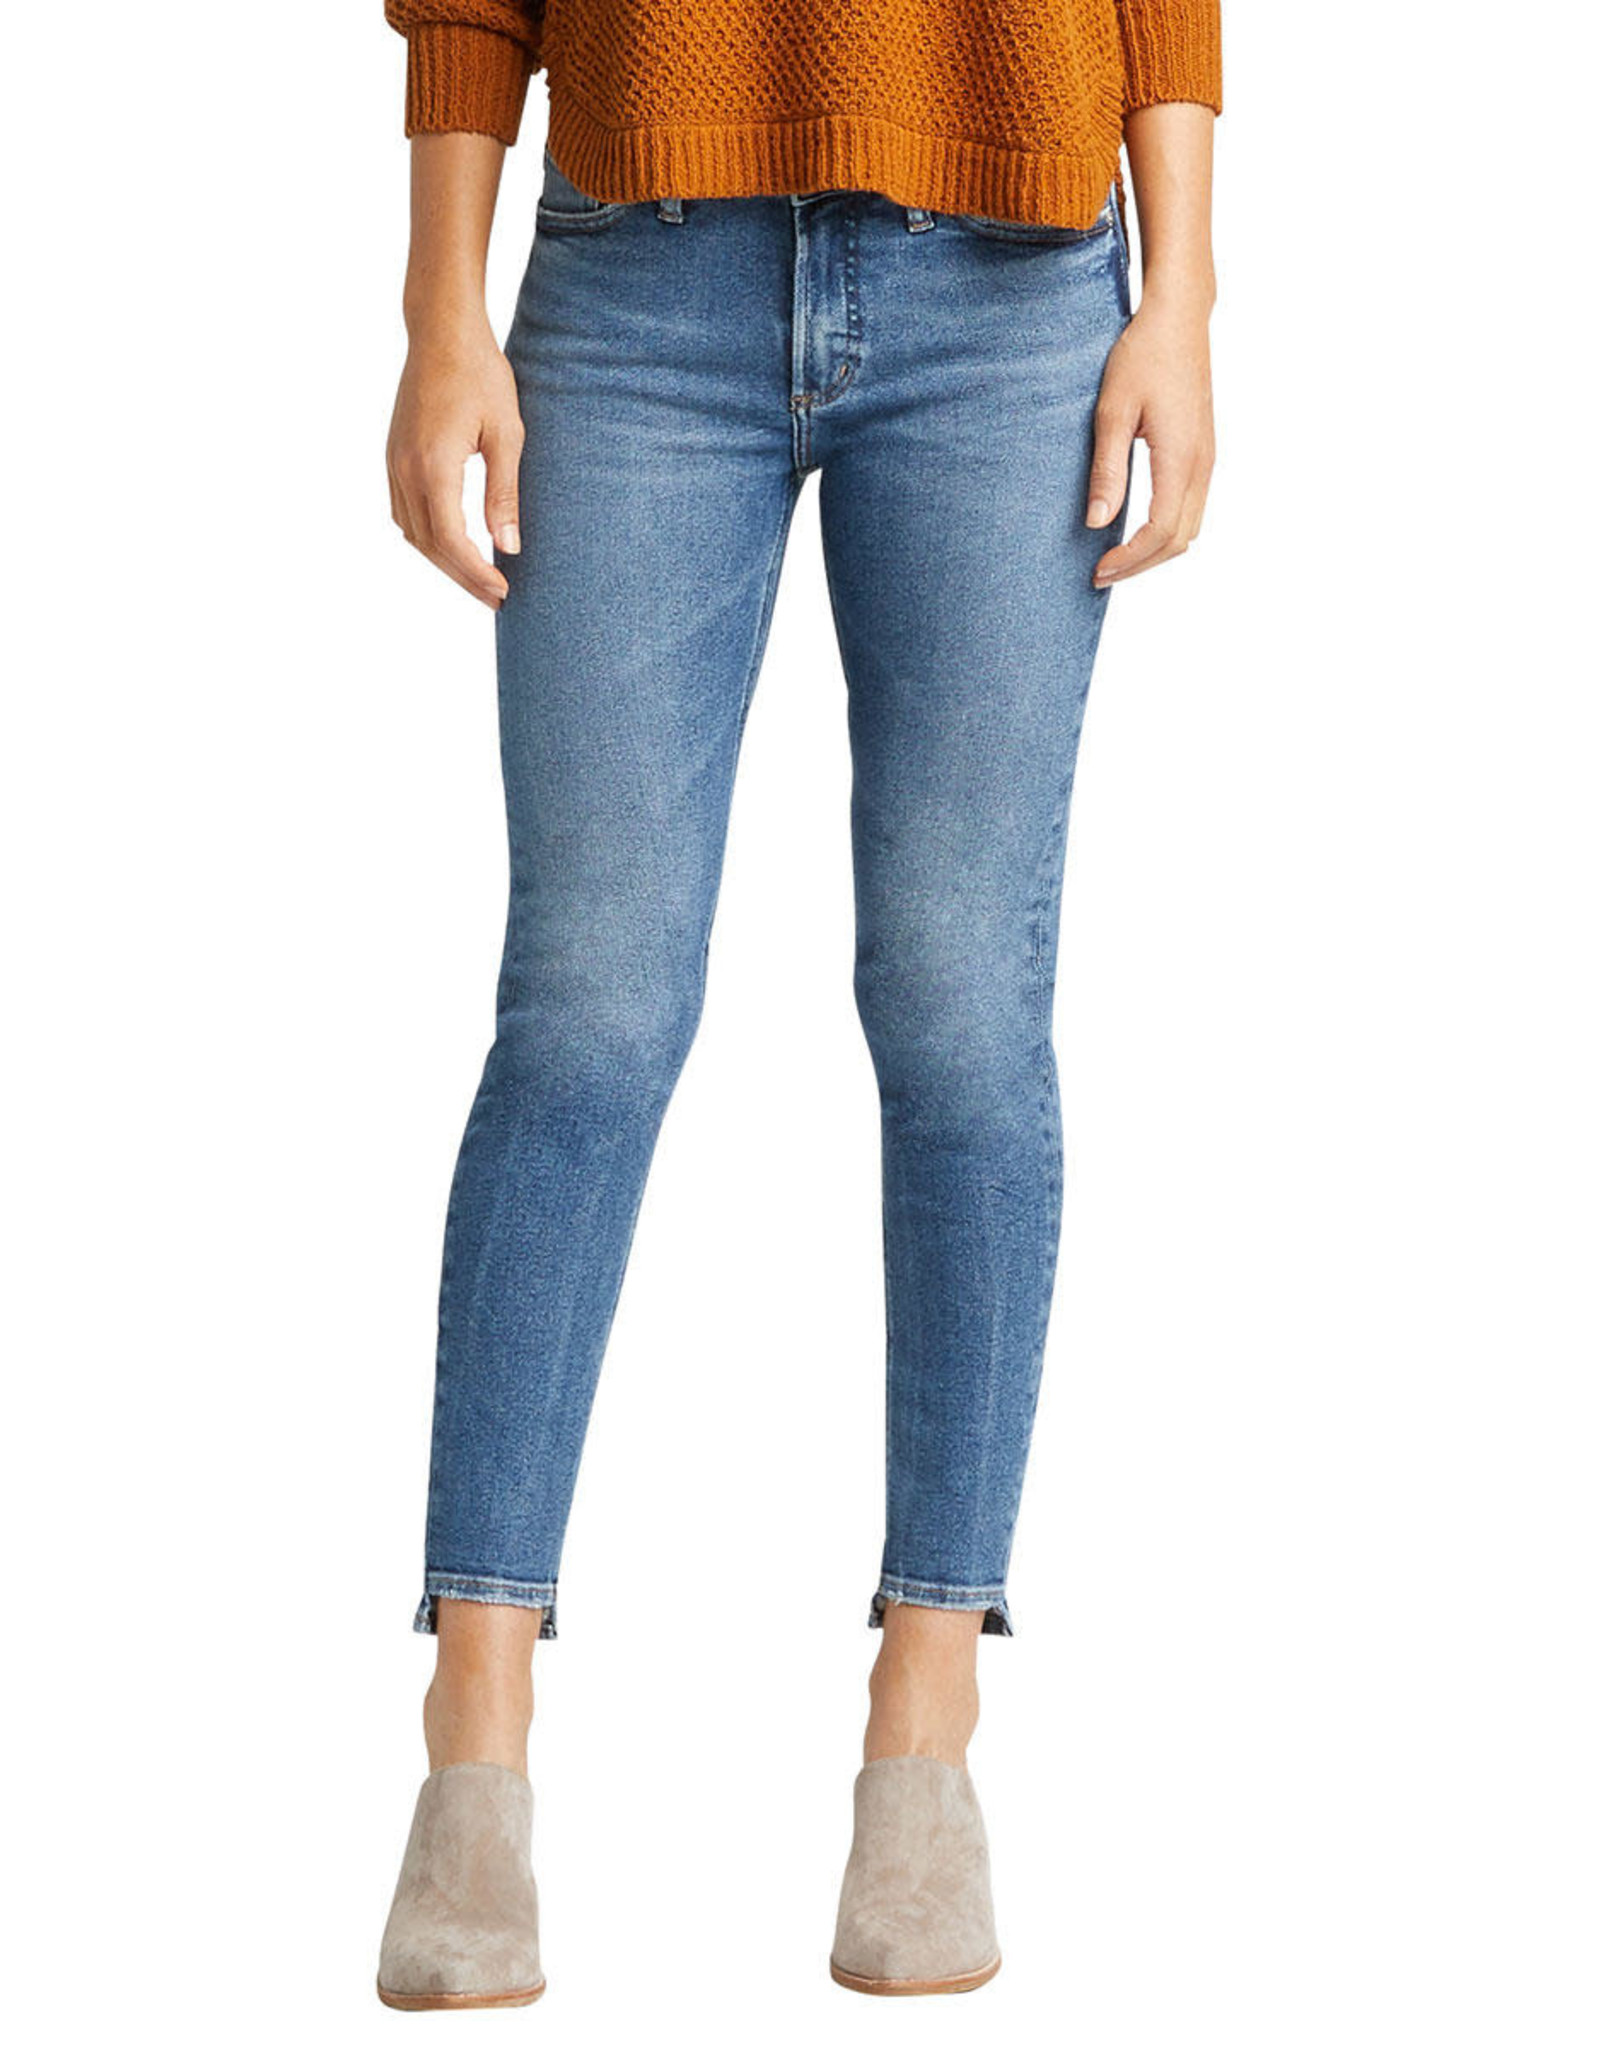 "Silver Brand Jeans Most Wanted Indigo Skinny Jeans. 27"" inseam. Mid Rise."